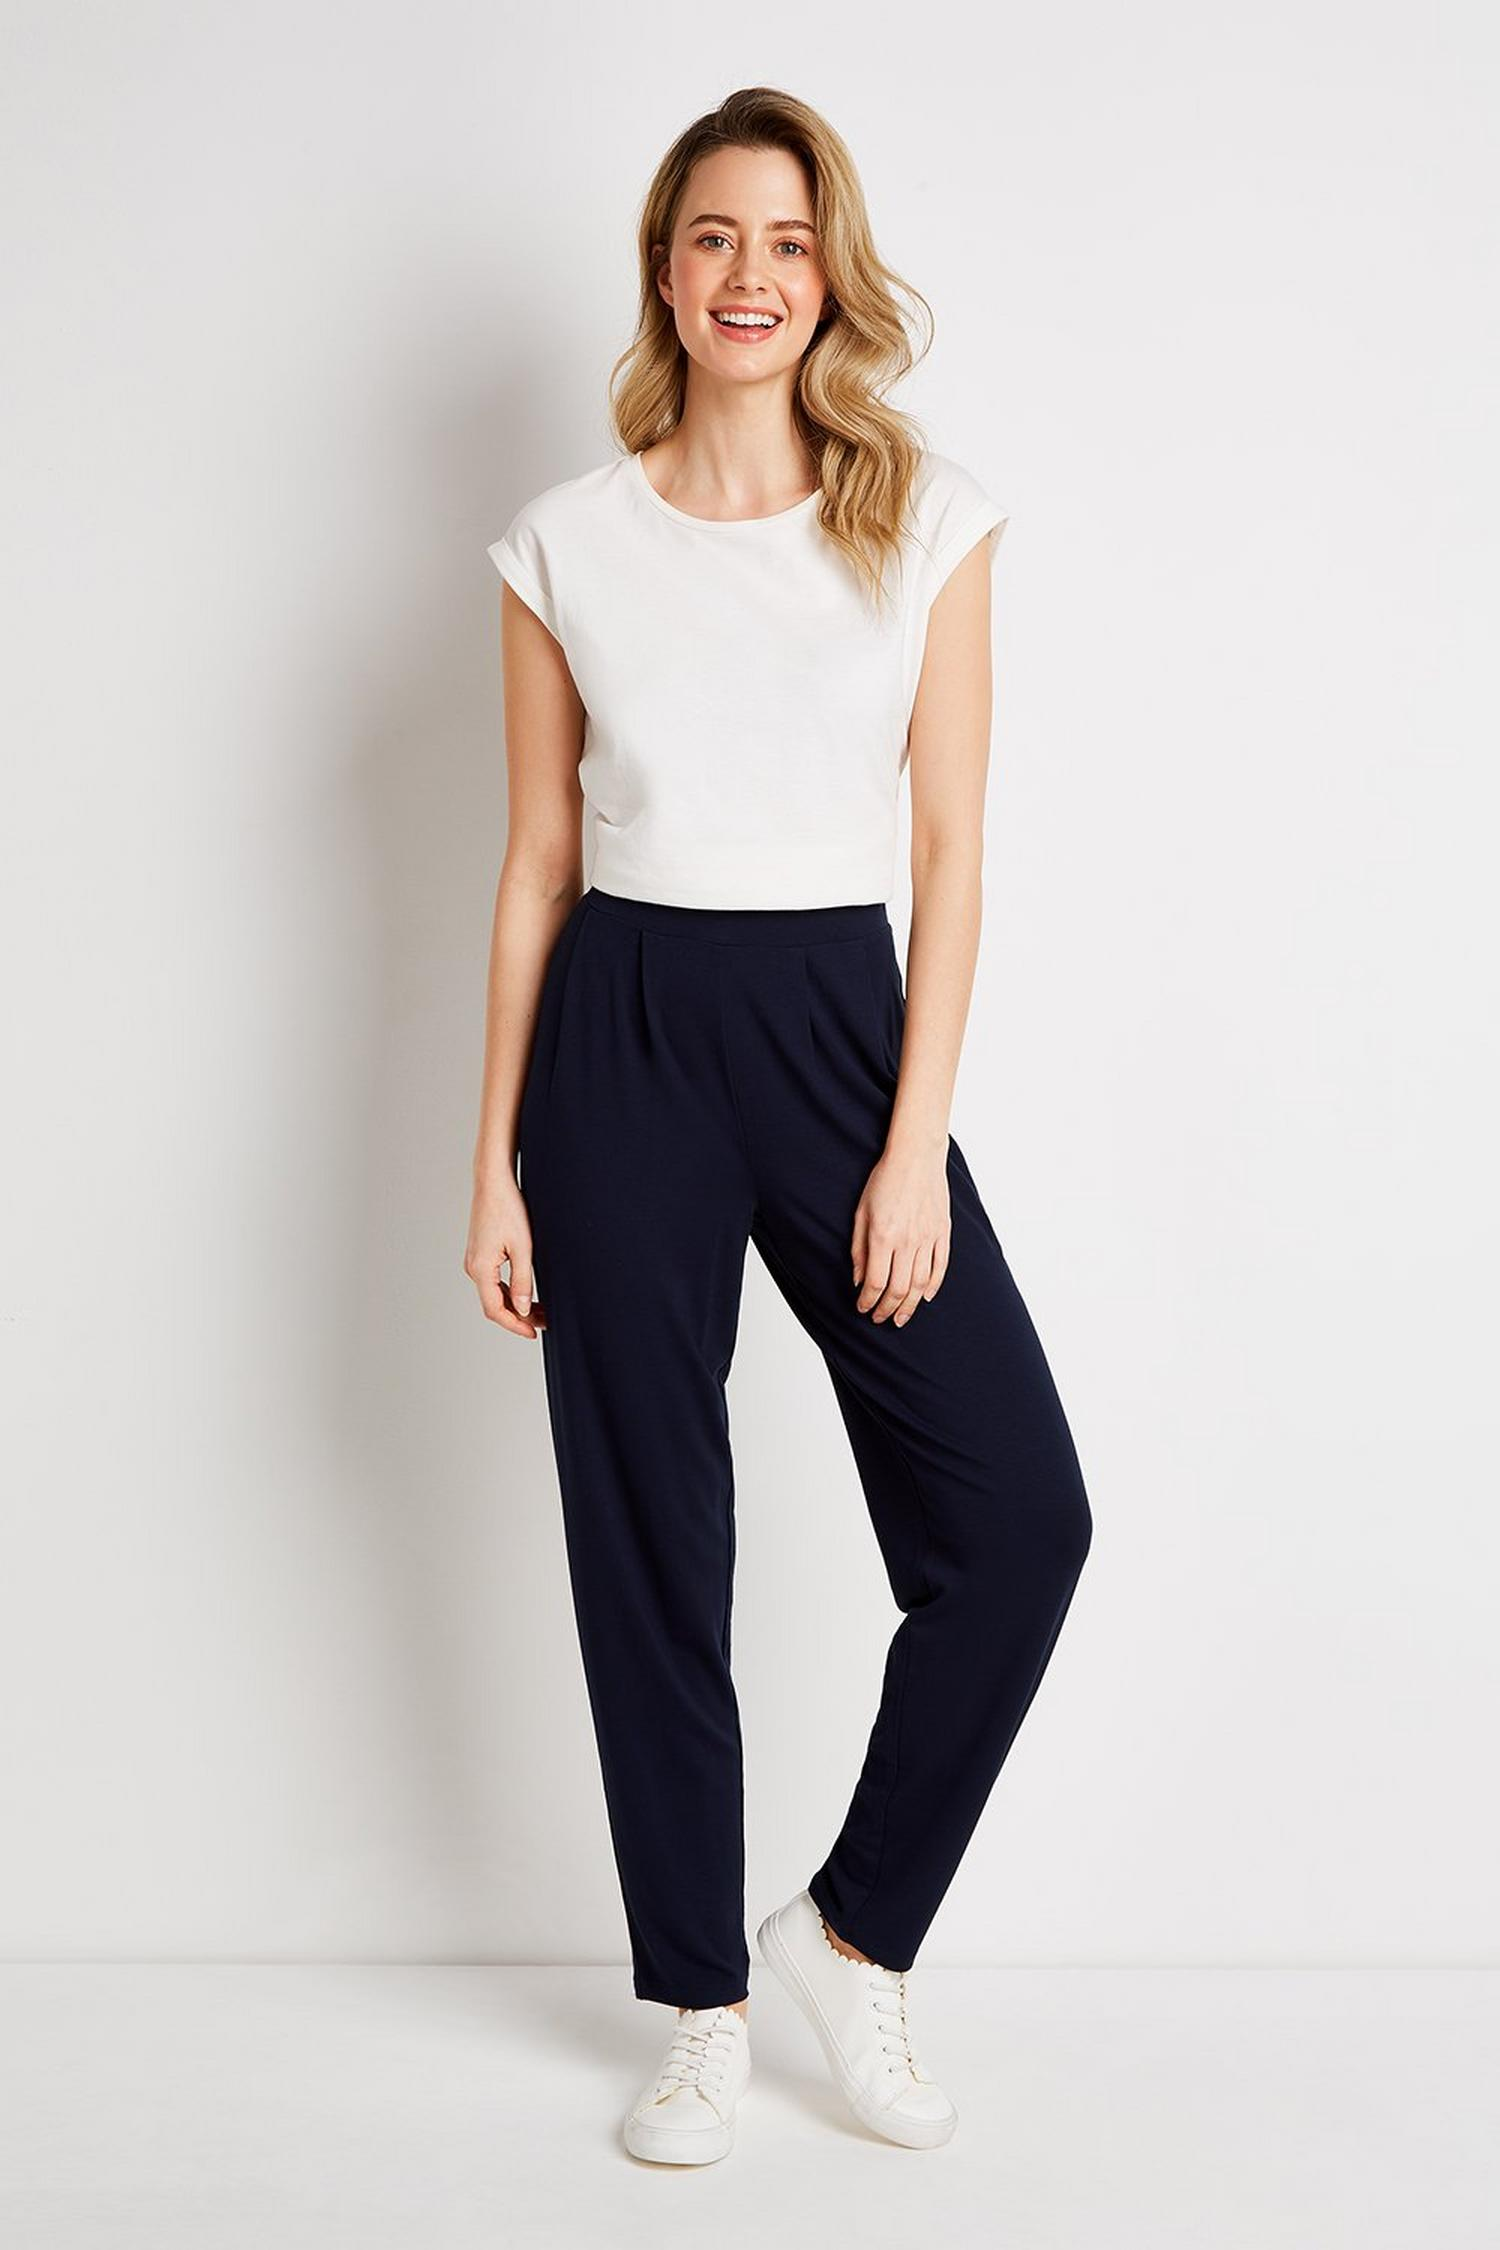 148 TALL Navy Tapered Trousers image number 4